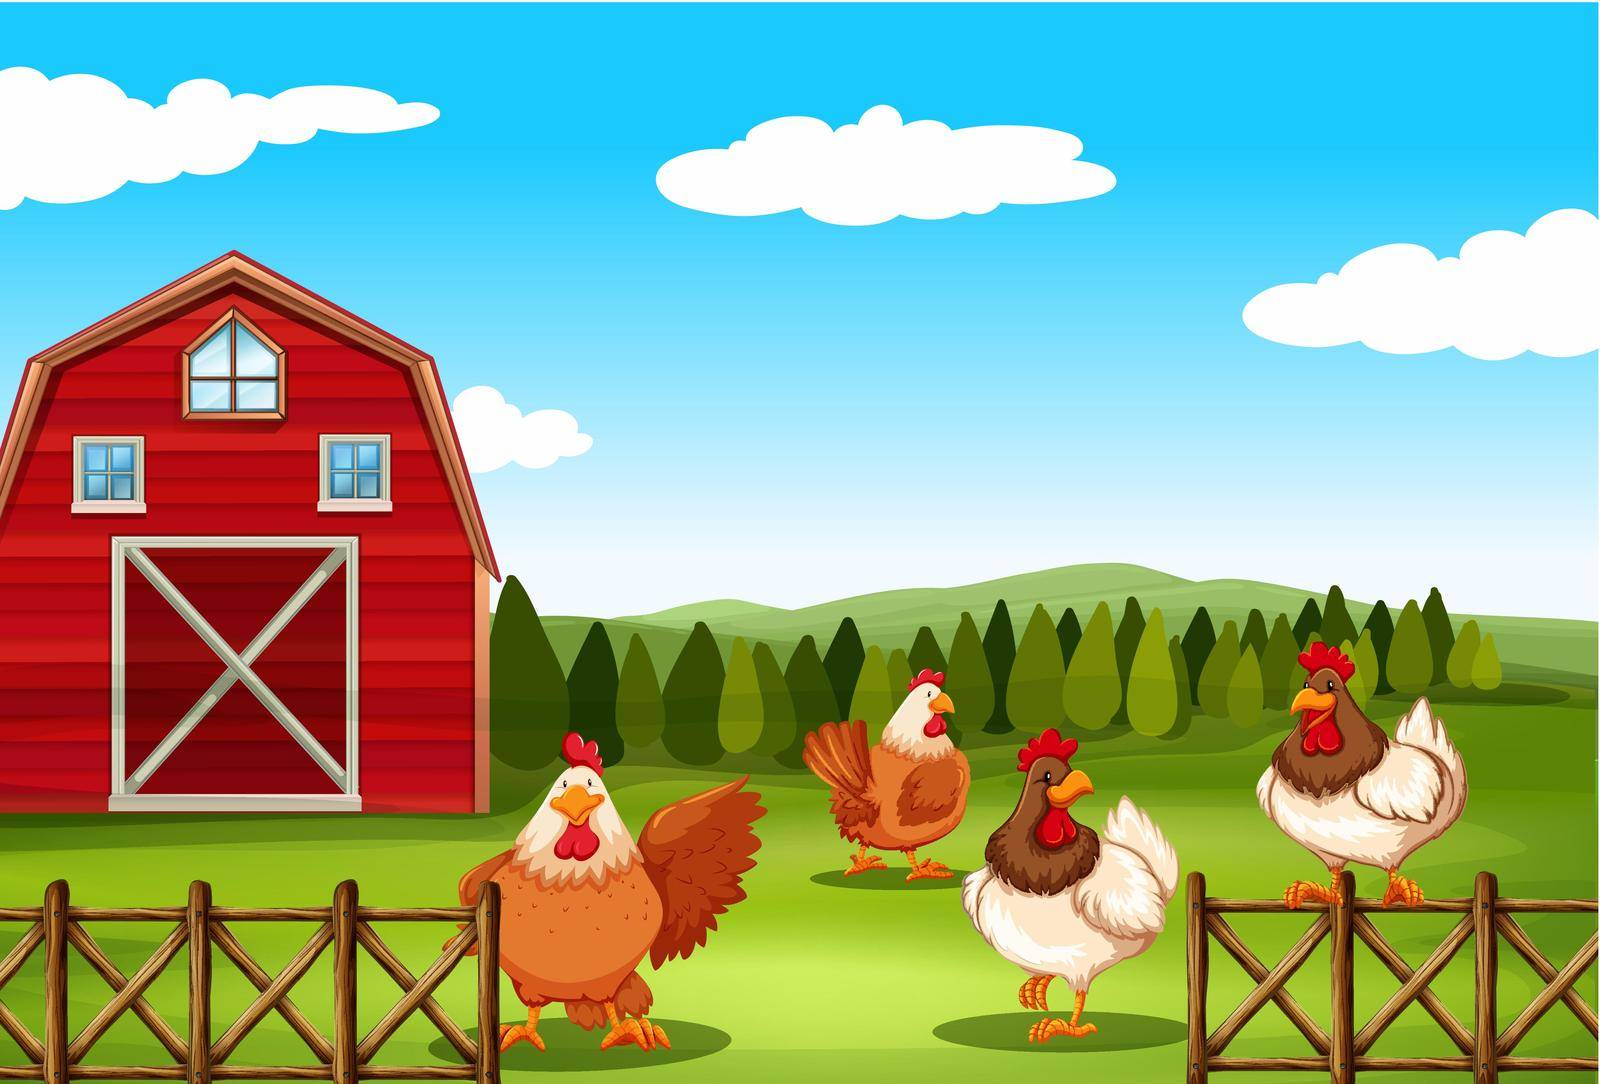 Poster of a barn with chickens behind the fence